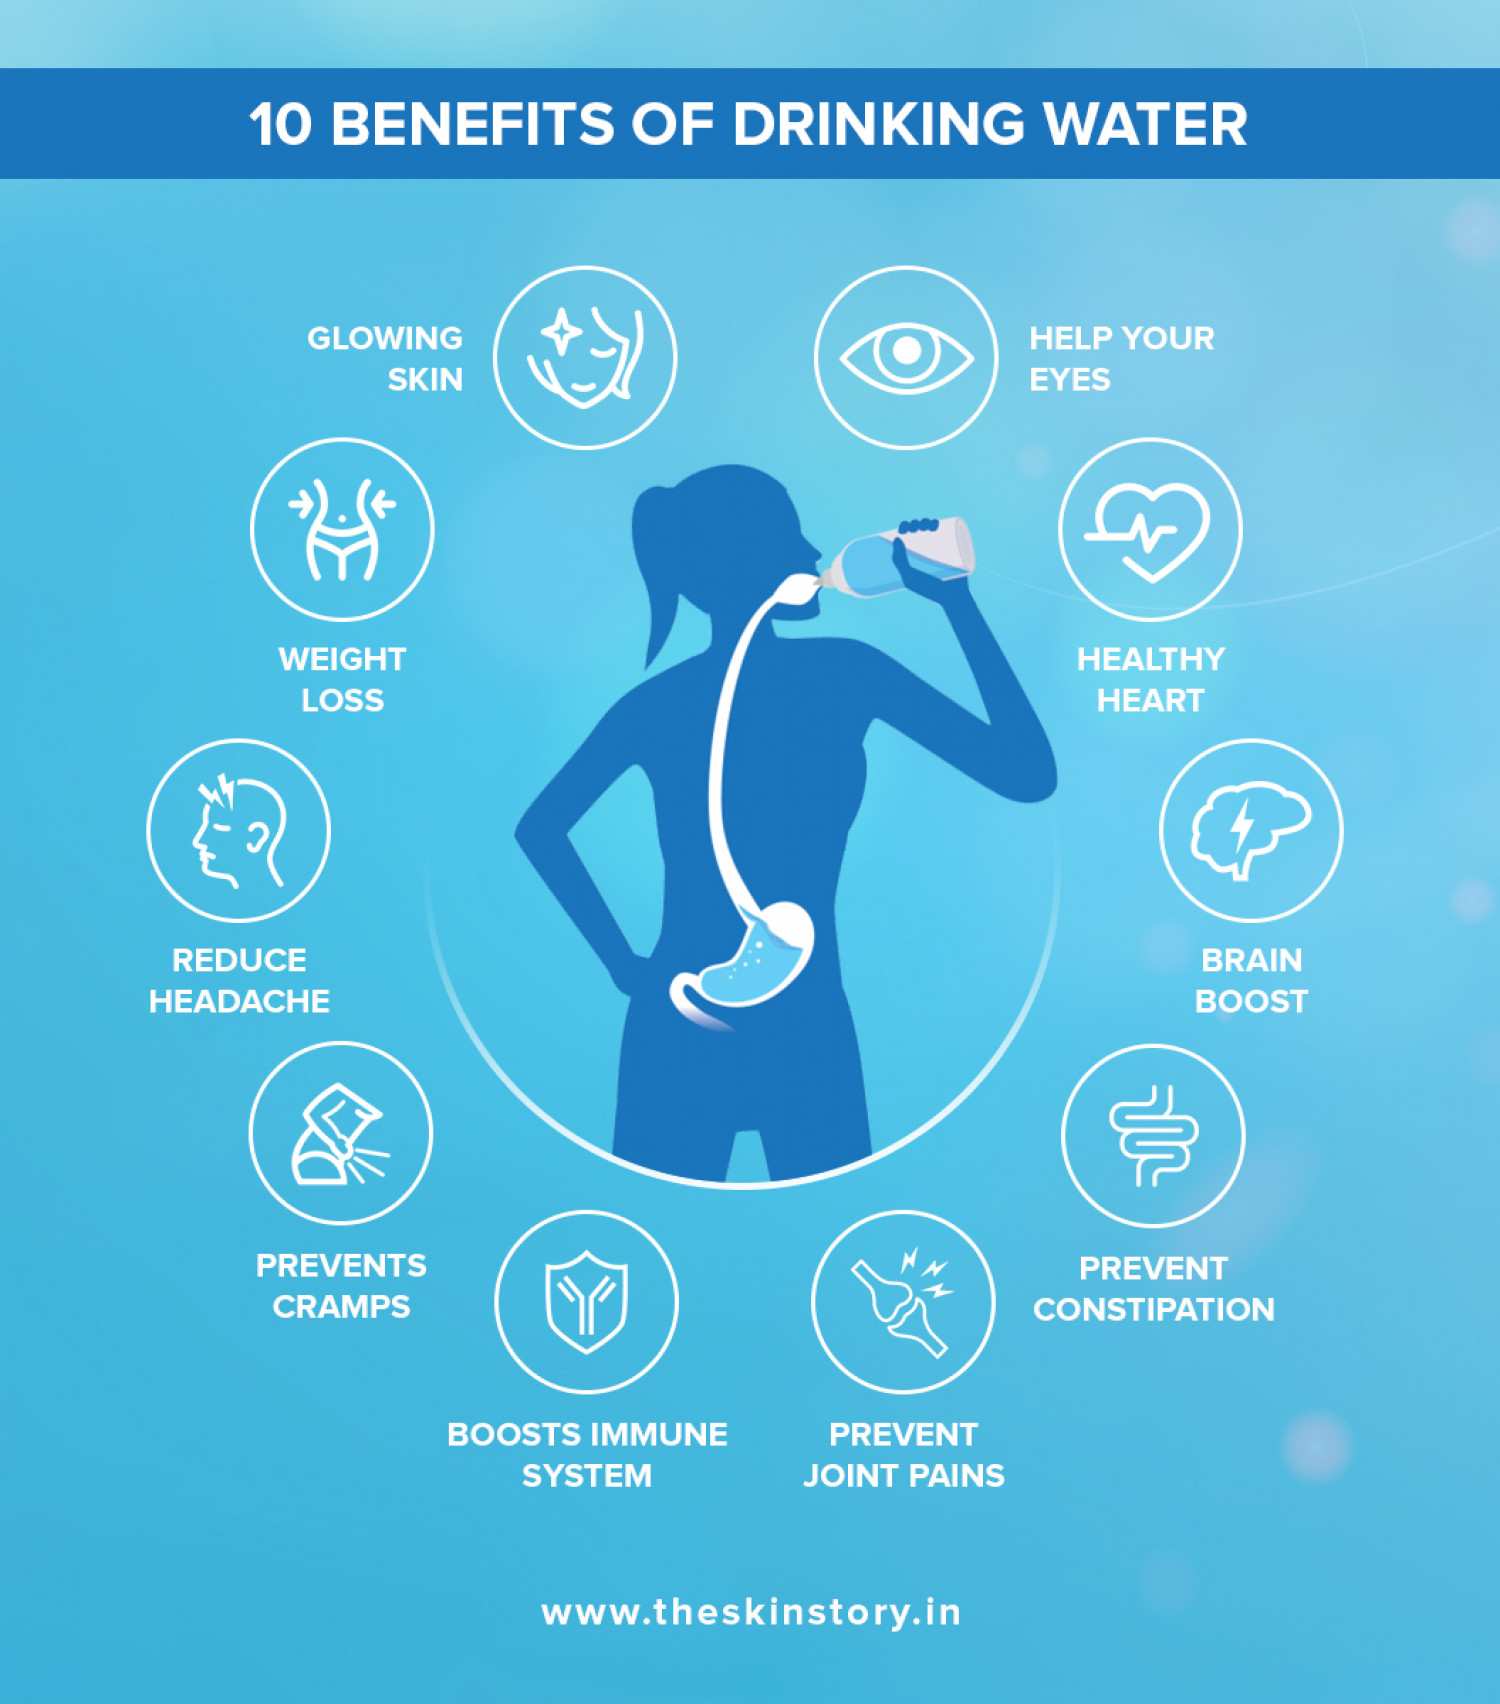 10 Benefits of Drinking Water Infographic